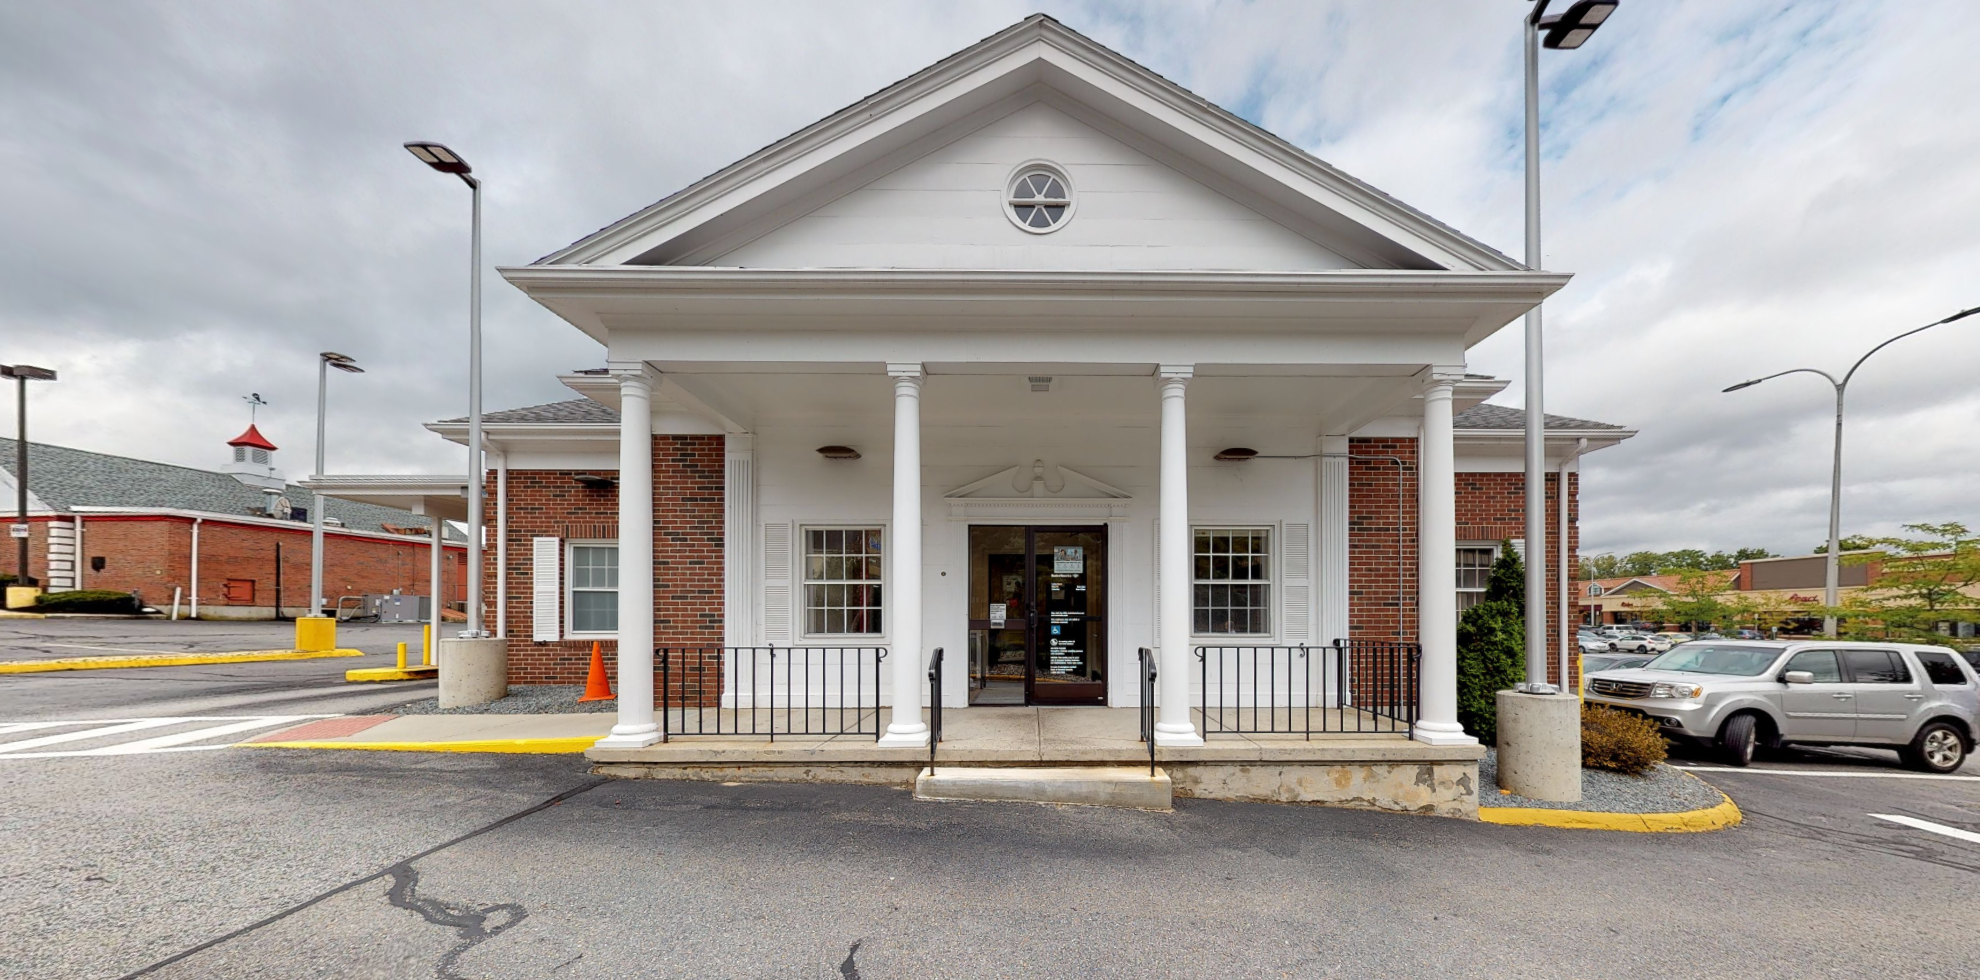 Bank of America financial center with drive-thru ATM | 2 Summer St, Chelmsford, MA 01824